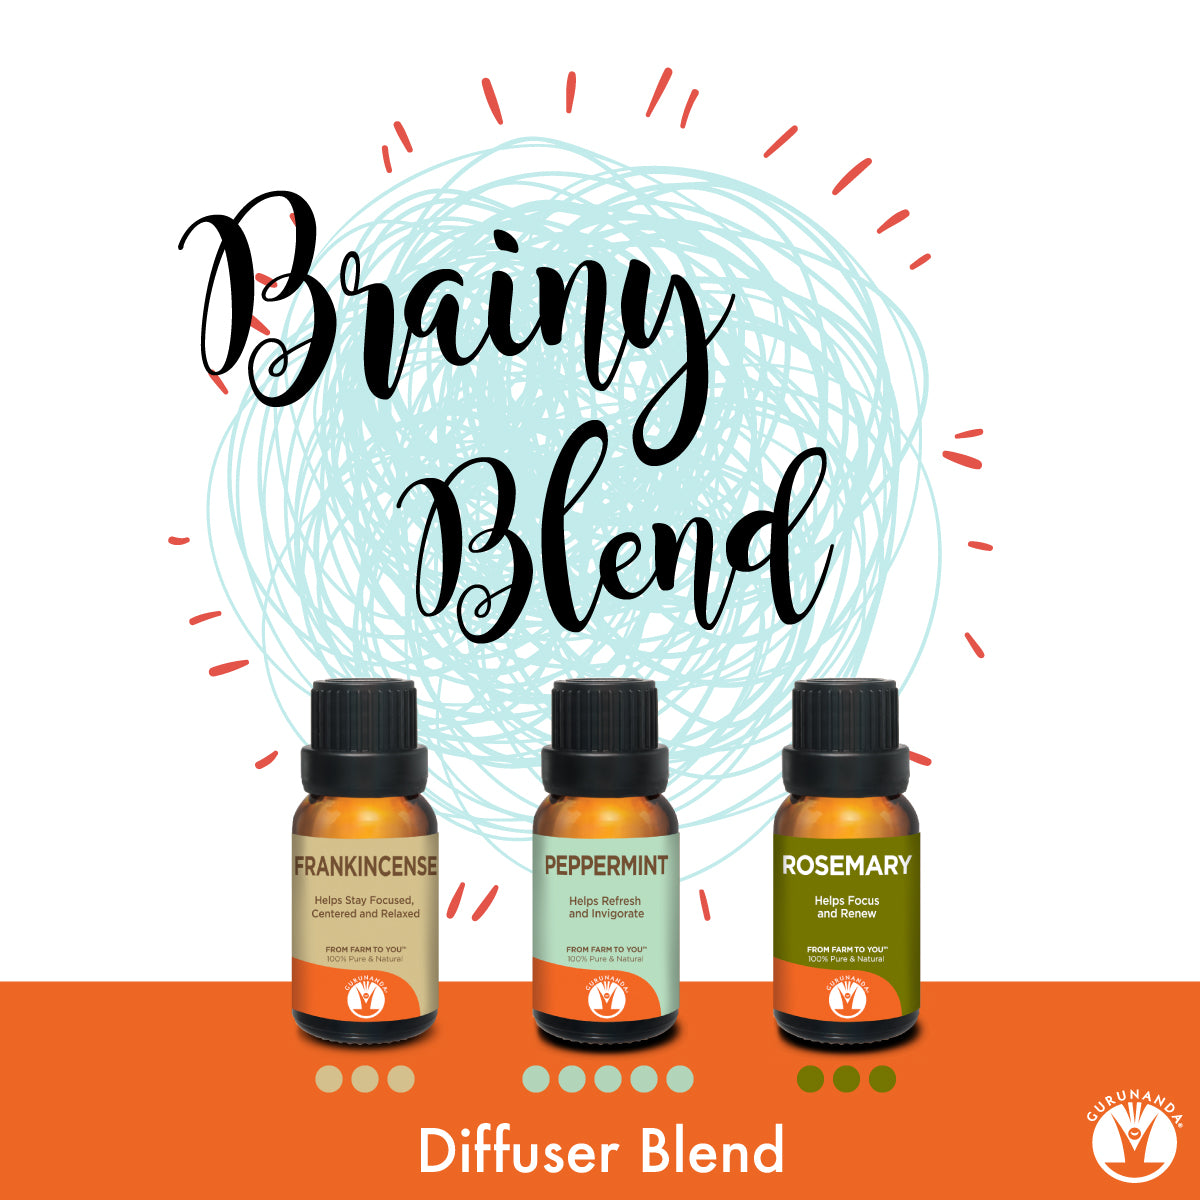 Brainy Revival Diffuser Blend